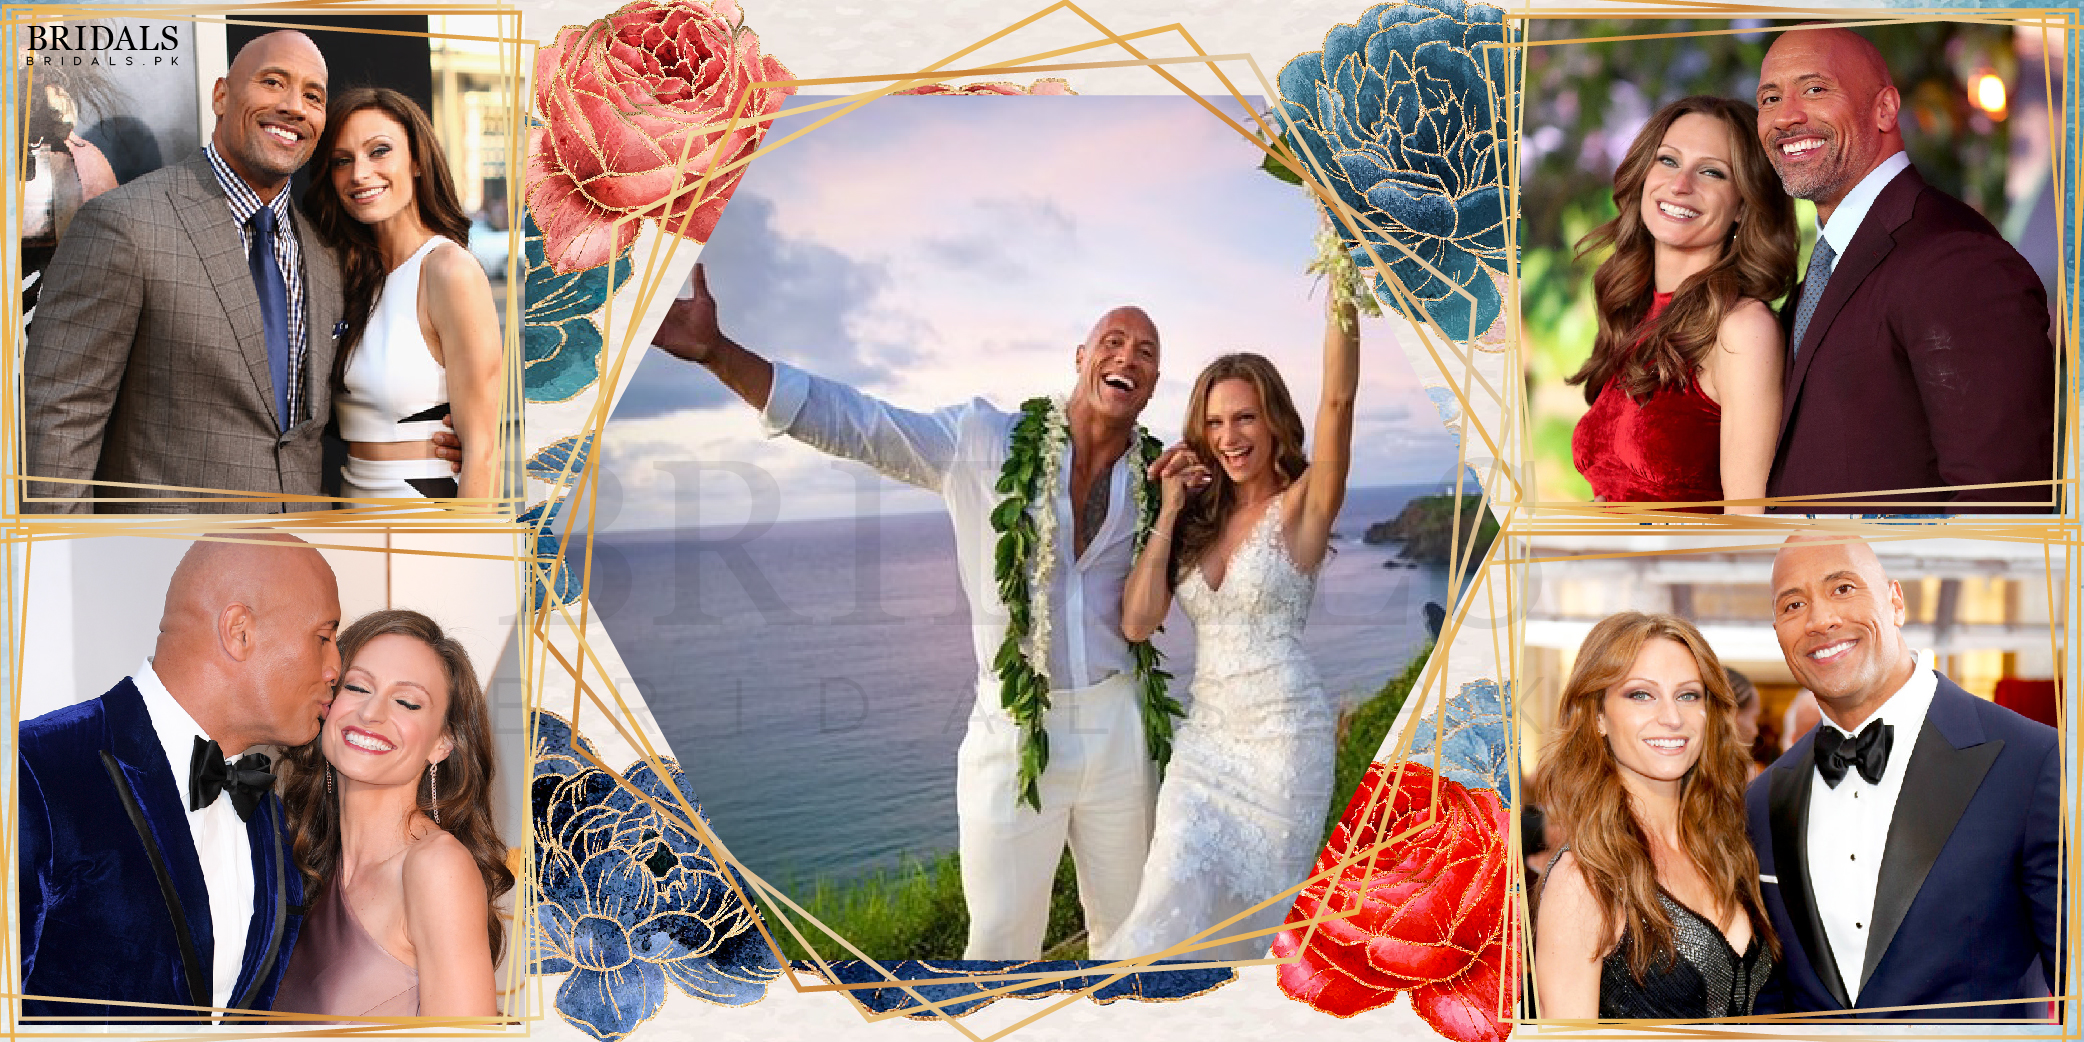 Dwayne Johnson aka The Rock Has Finally Married His Rock!